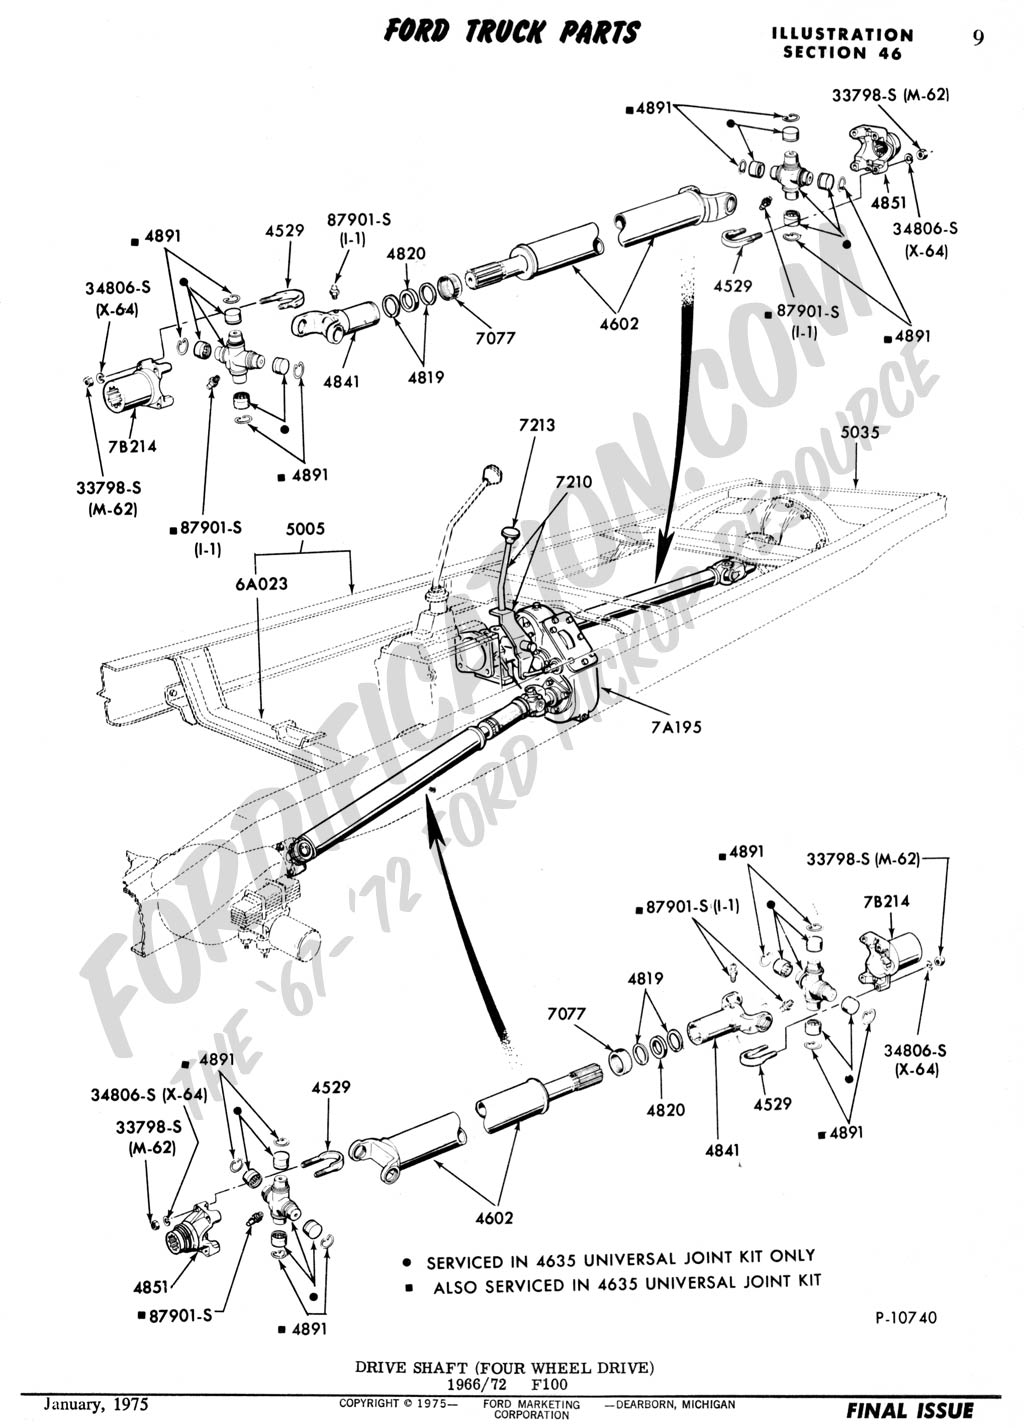 F150 Rear Axle Diagram